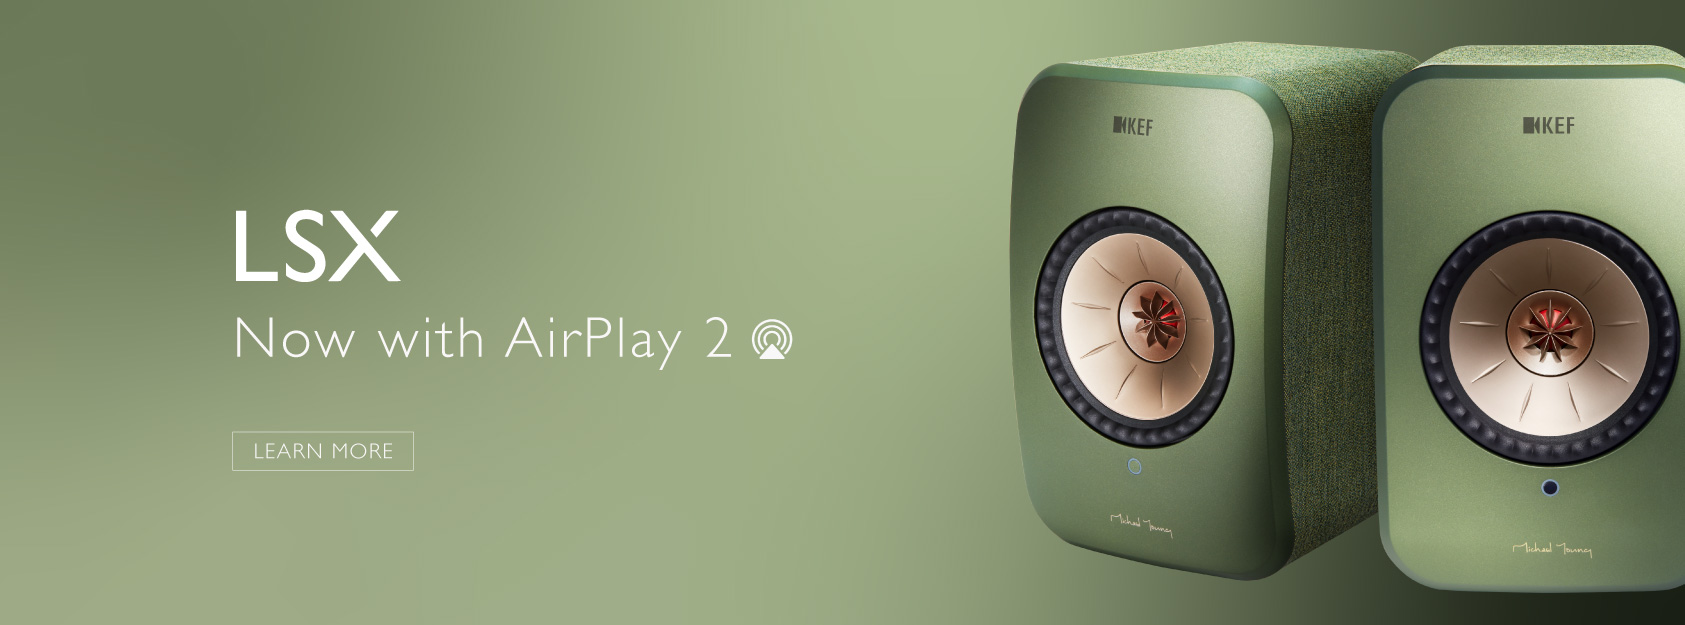 LSX Airplay